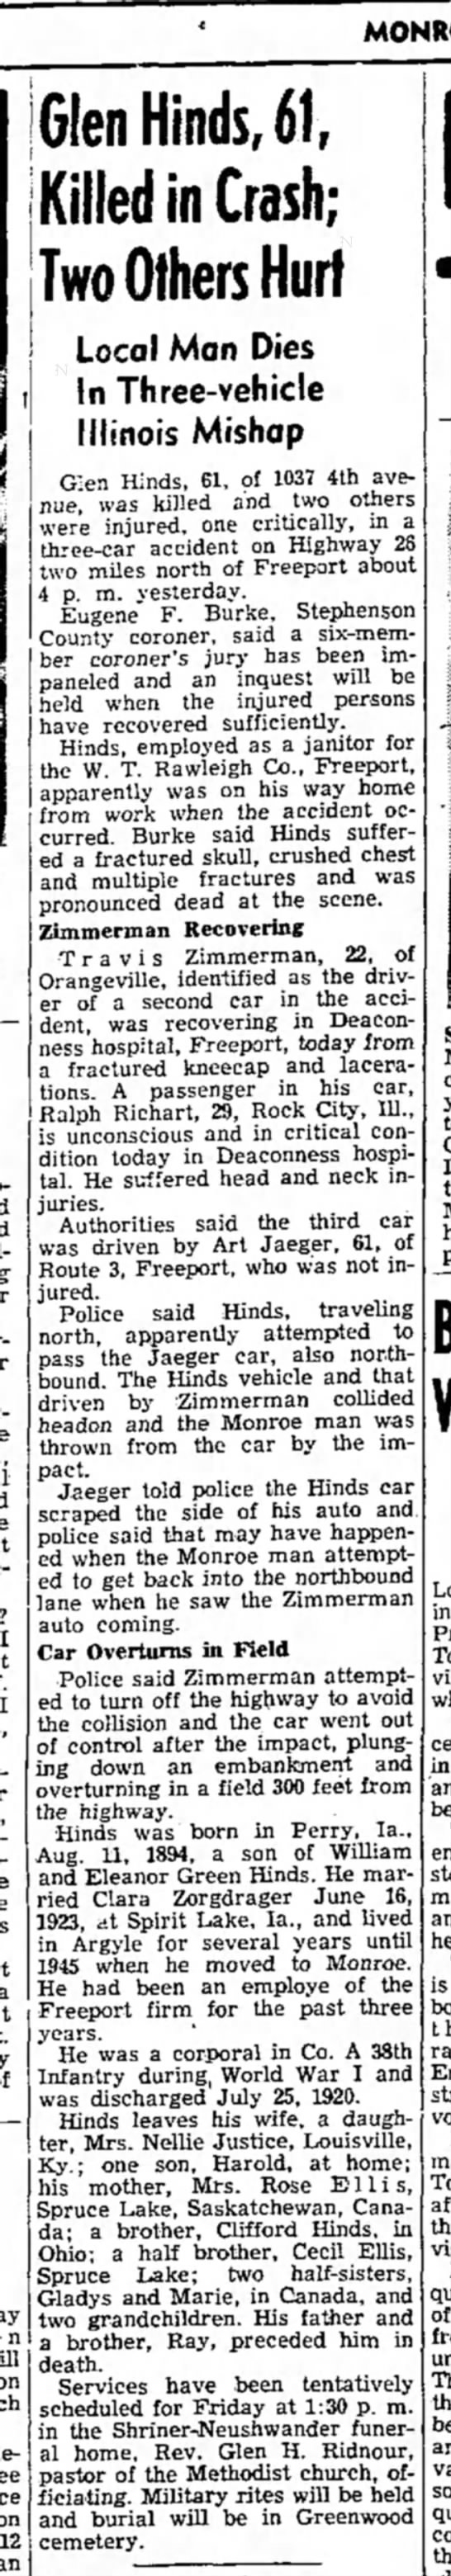 Zorgdrager-Hinds crash 1965 - MONROE, on Glen Hinds, 61, Killed in Crash; Two...